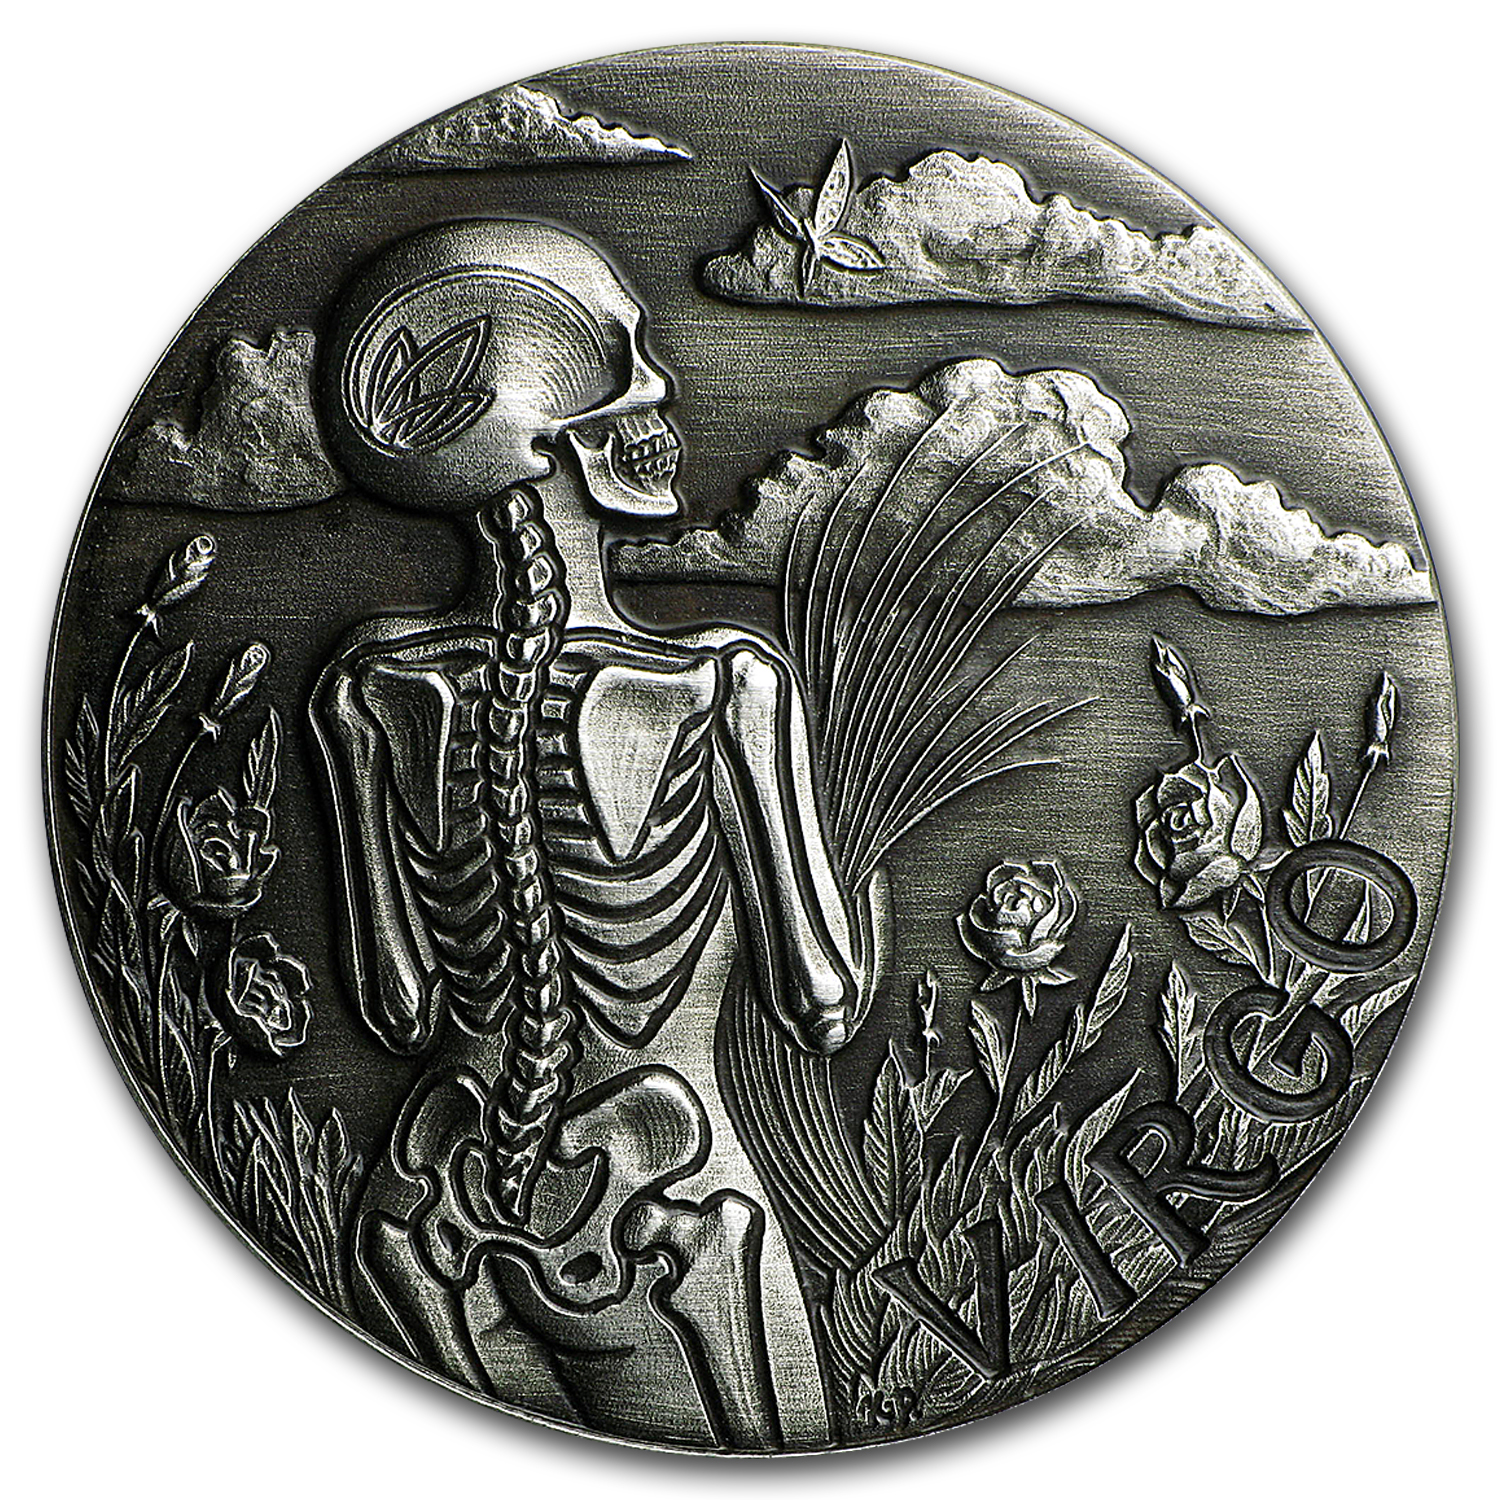 1 oz Silver Antique Round - Zodiac Skull Series (Virgo)